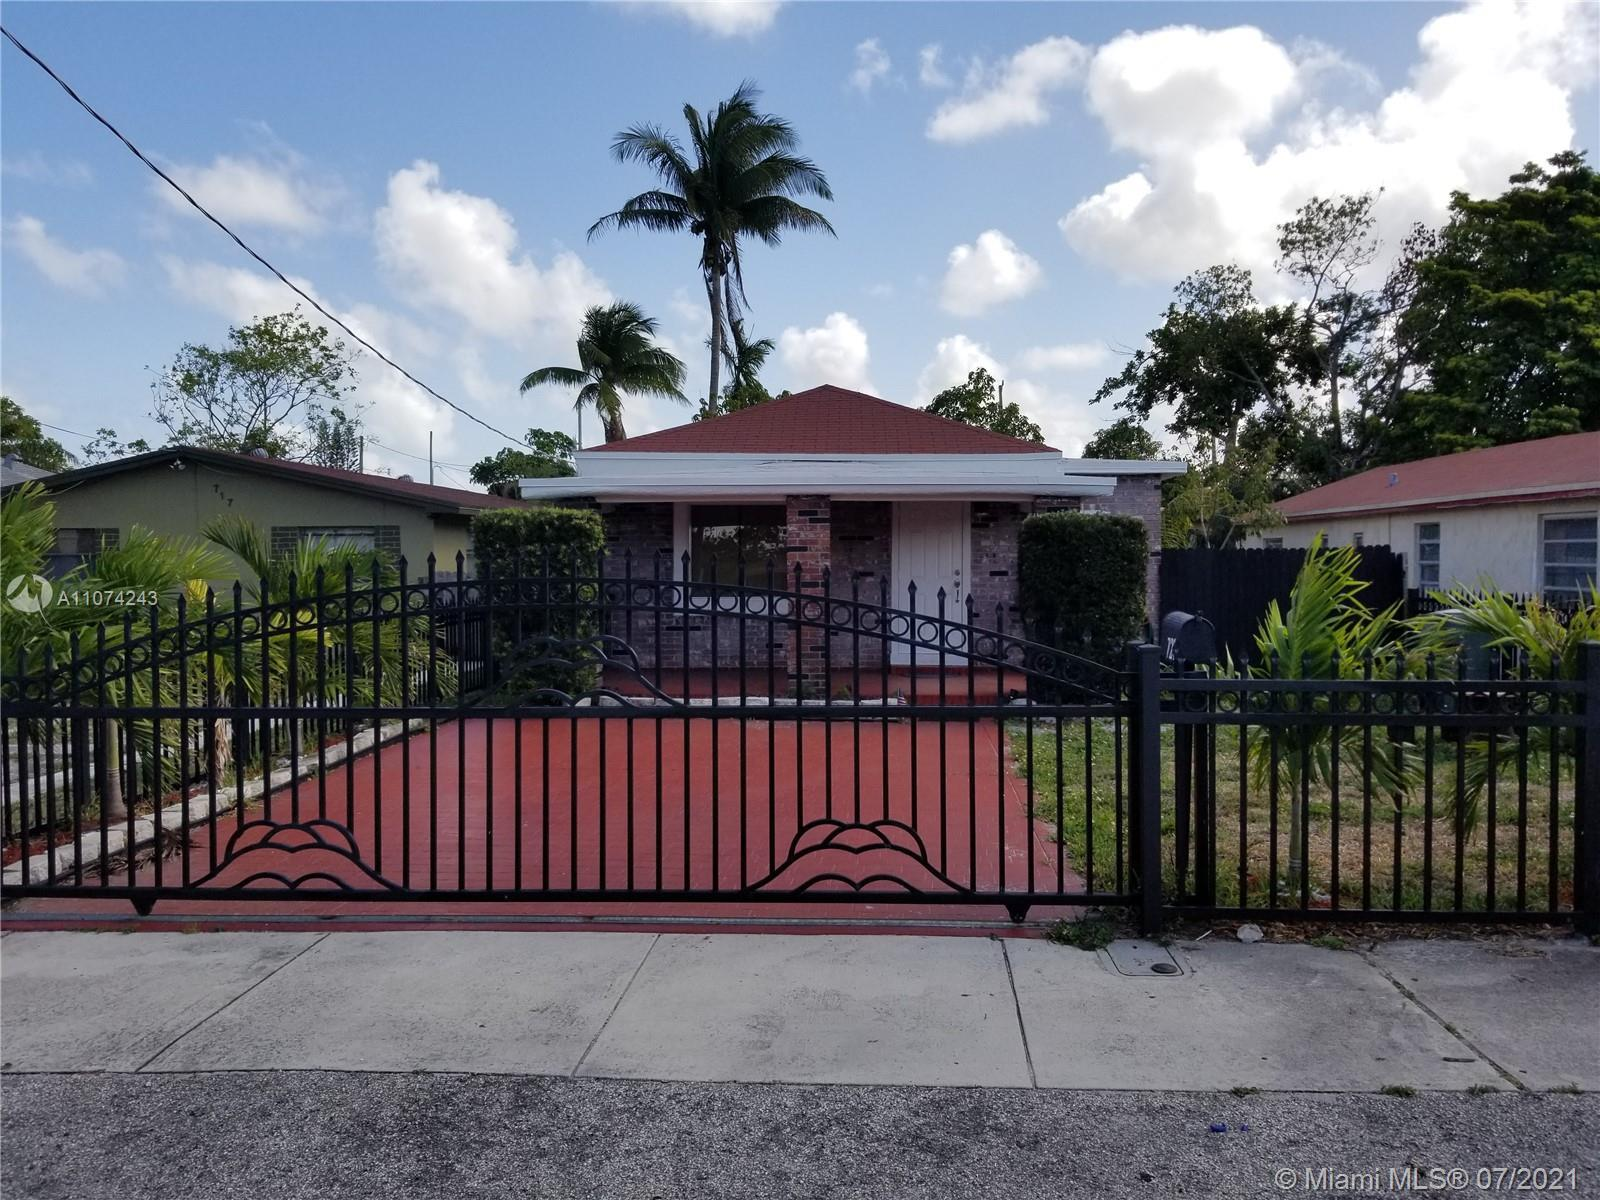 Beautifully renovated 3 bedroom 2 bathroom single family home with wood floors throughout, newer app